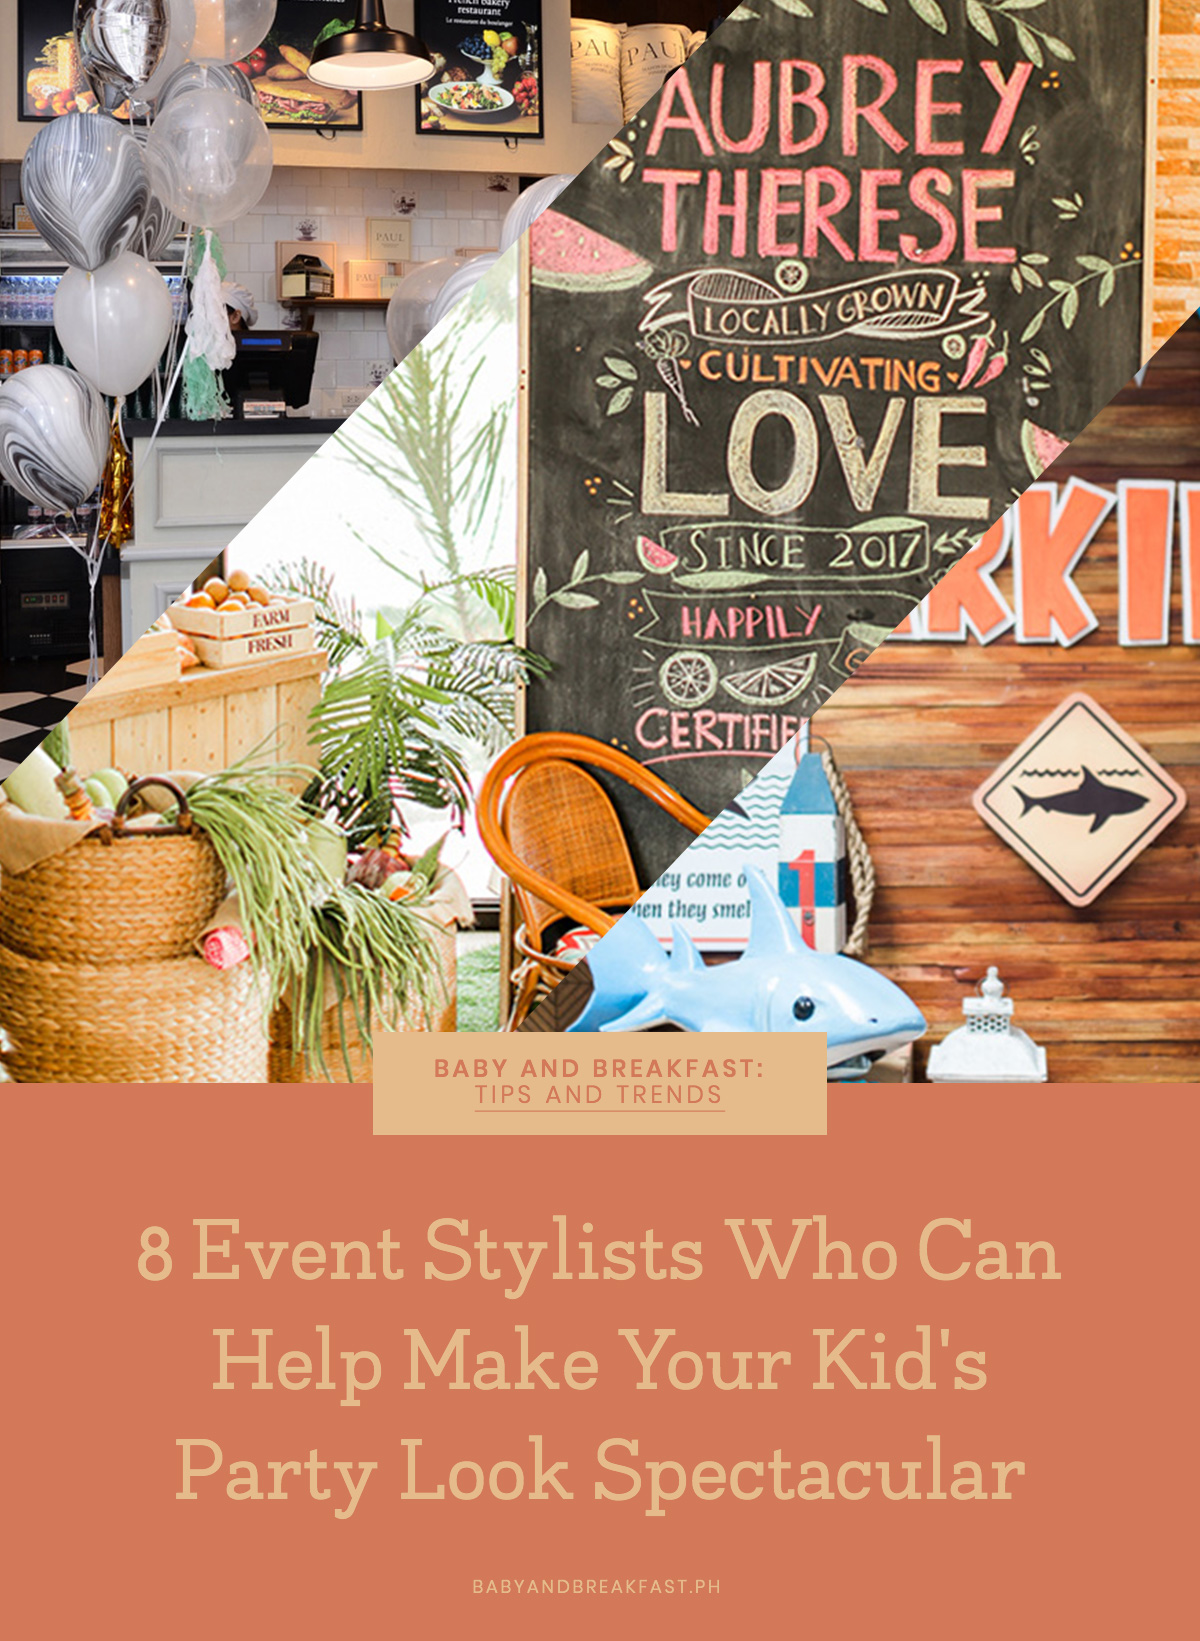 Baby and Breakfast: Tips and Trends 8 Event Stylists Who Can Help Make Your Kid's Party Look Spectacular